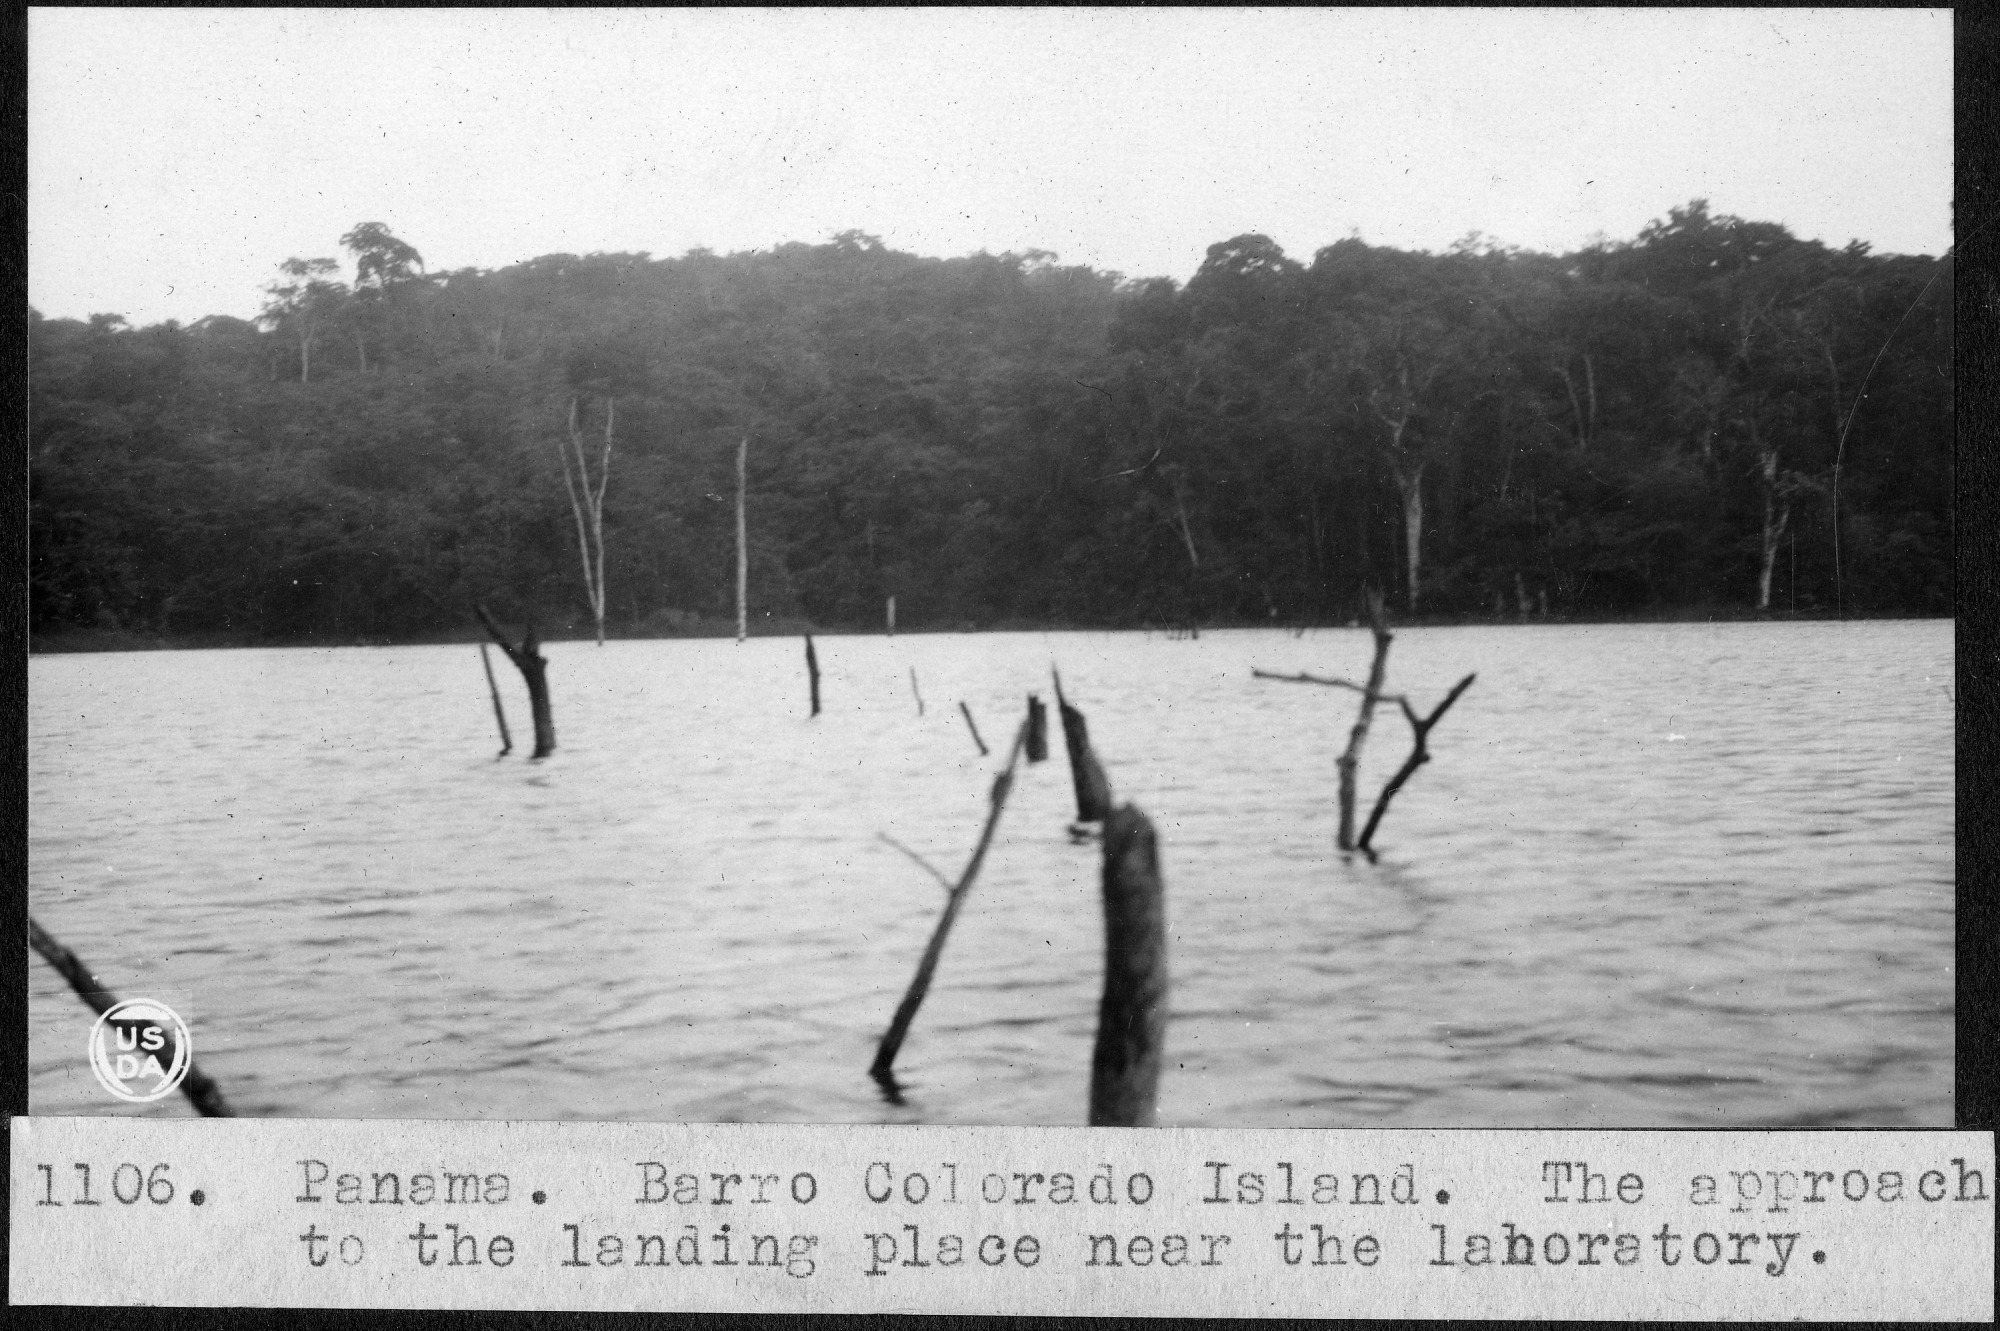 Barro Colorado Island -- The Approach to the Landing